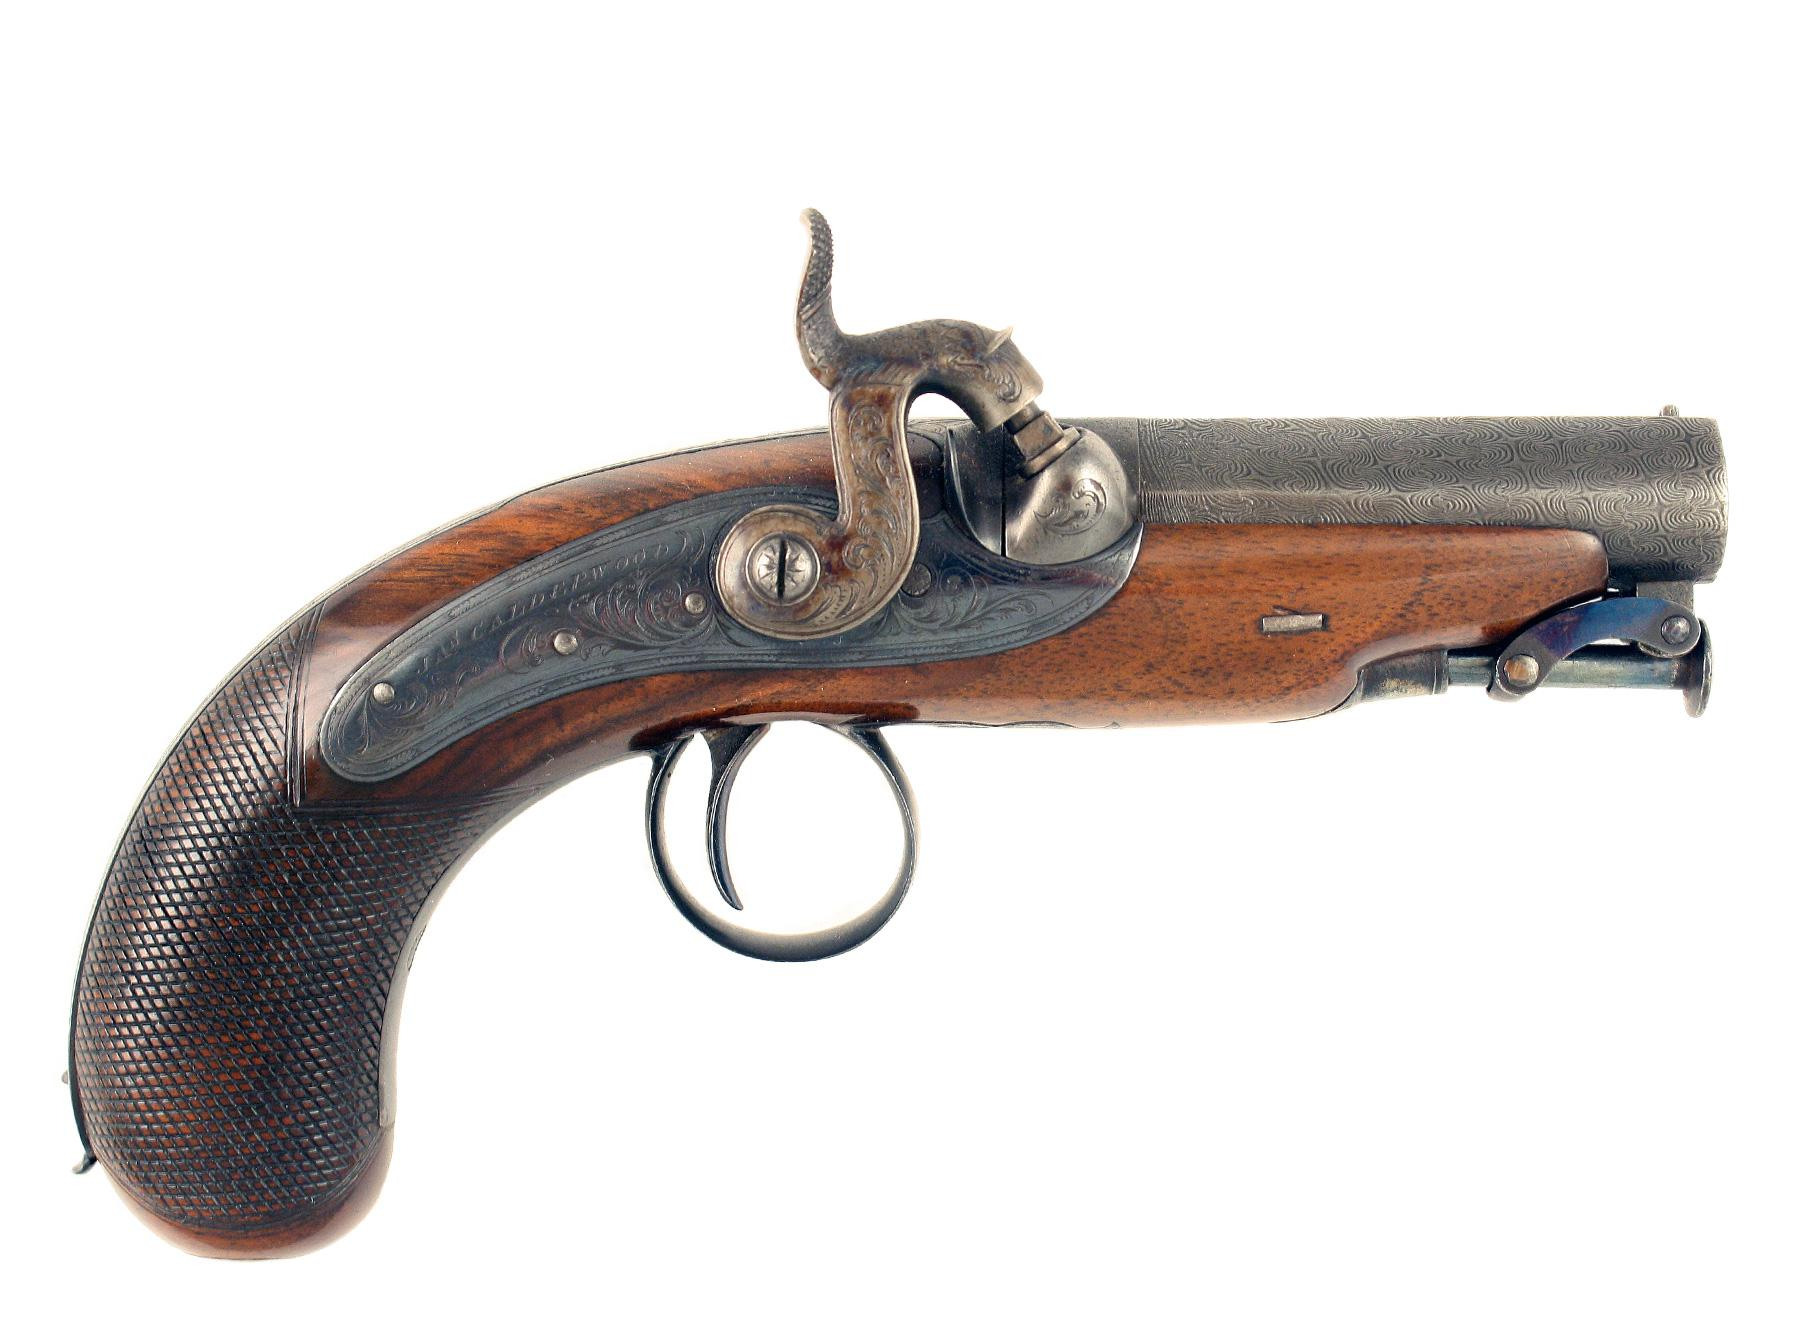 An Incredible Irish Pocket Pistol